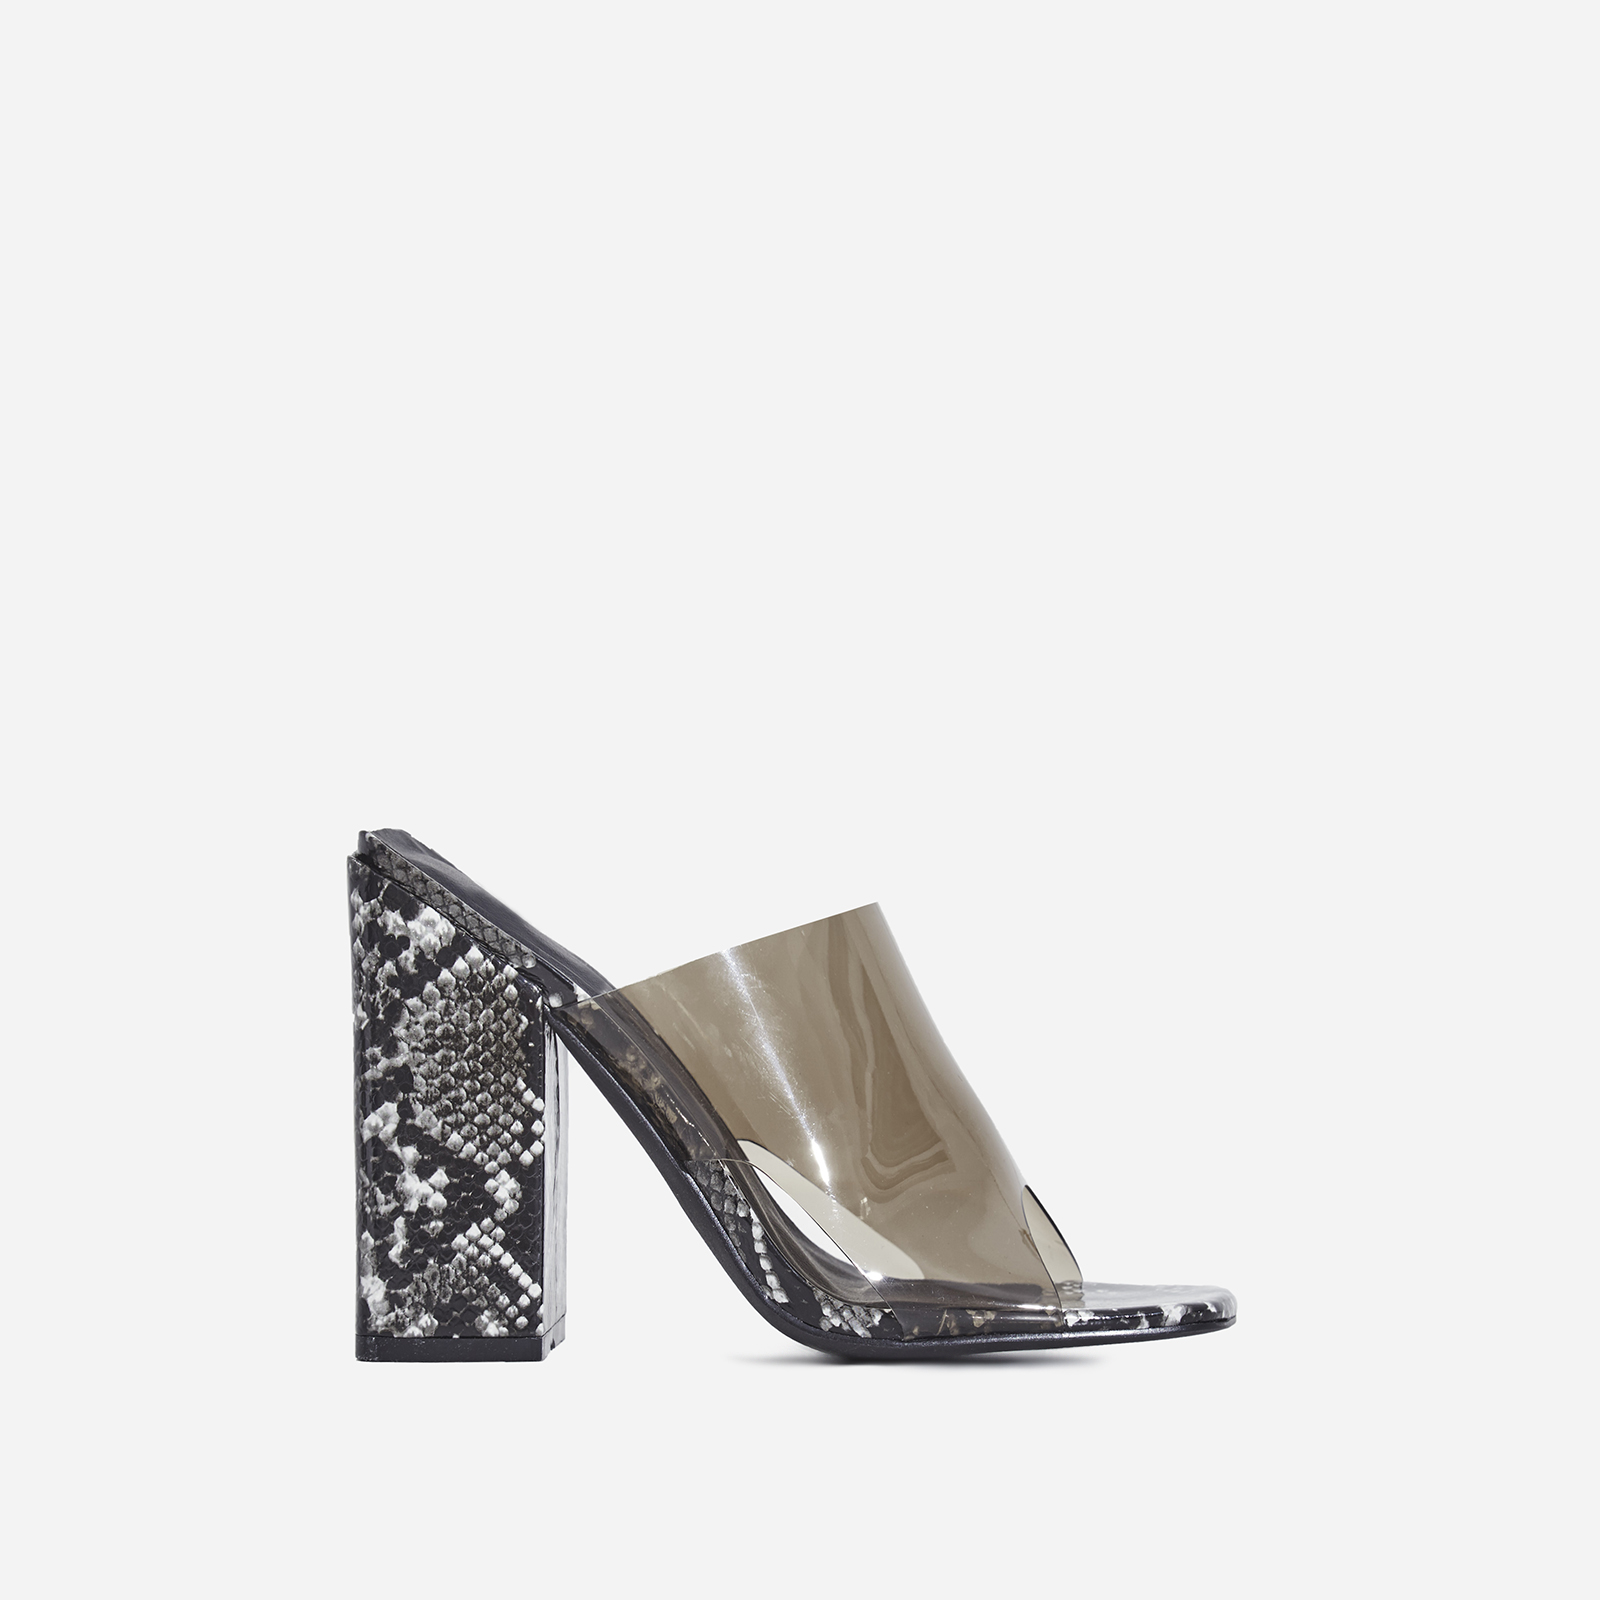 e1c64538524 Brooke Block Heel Perspex Peep Toe Mule In Black Snake Print Faux Leather